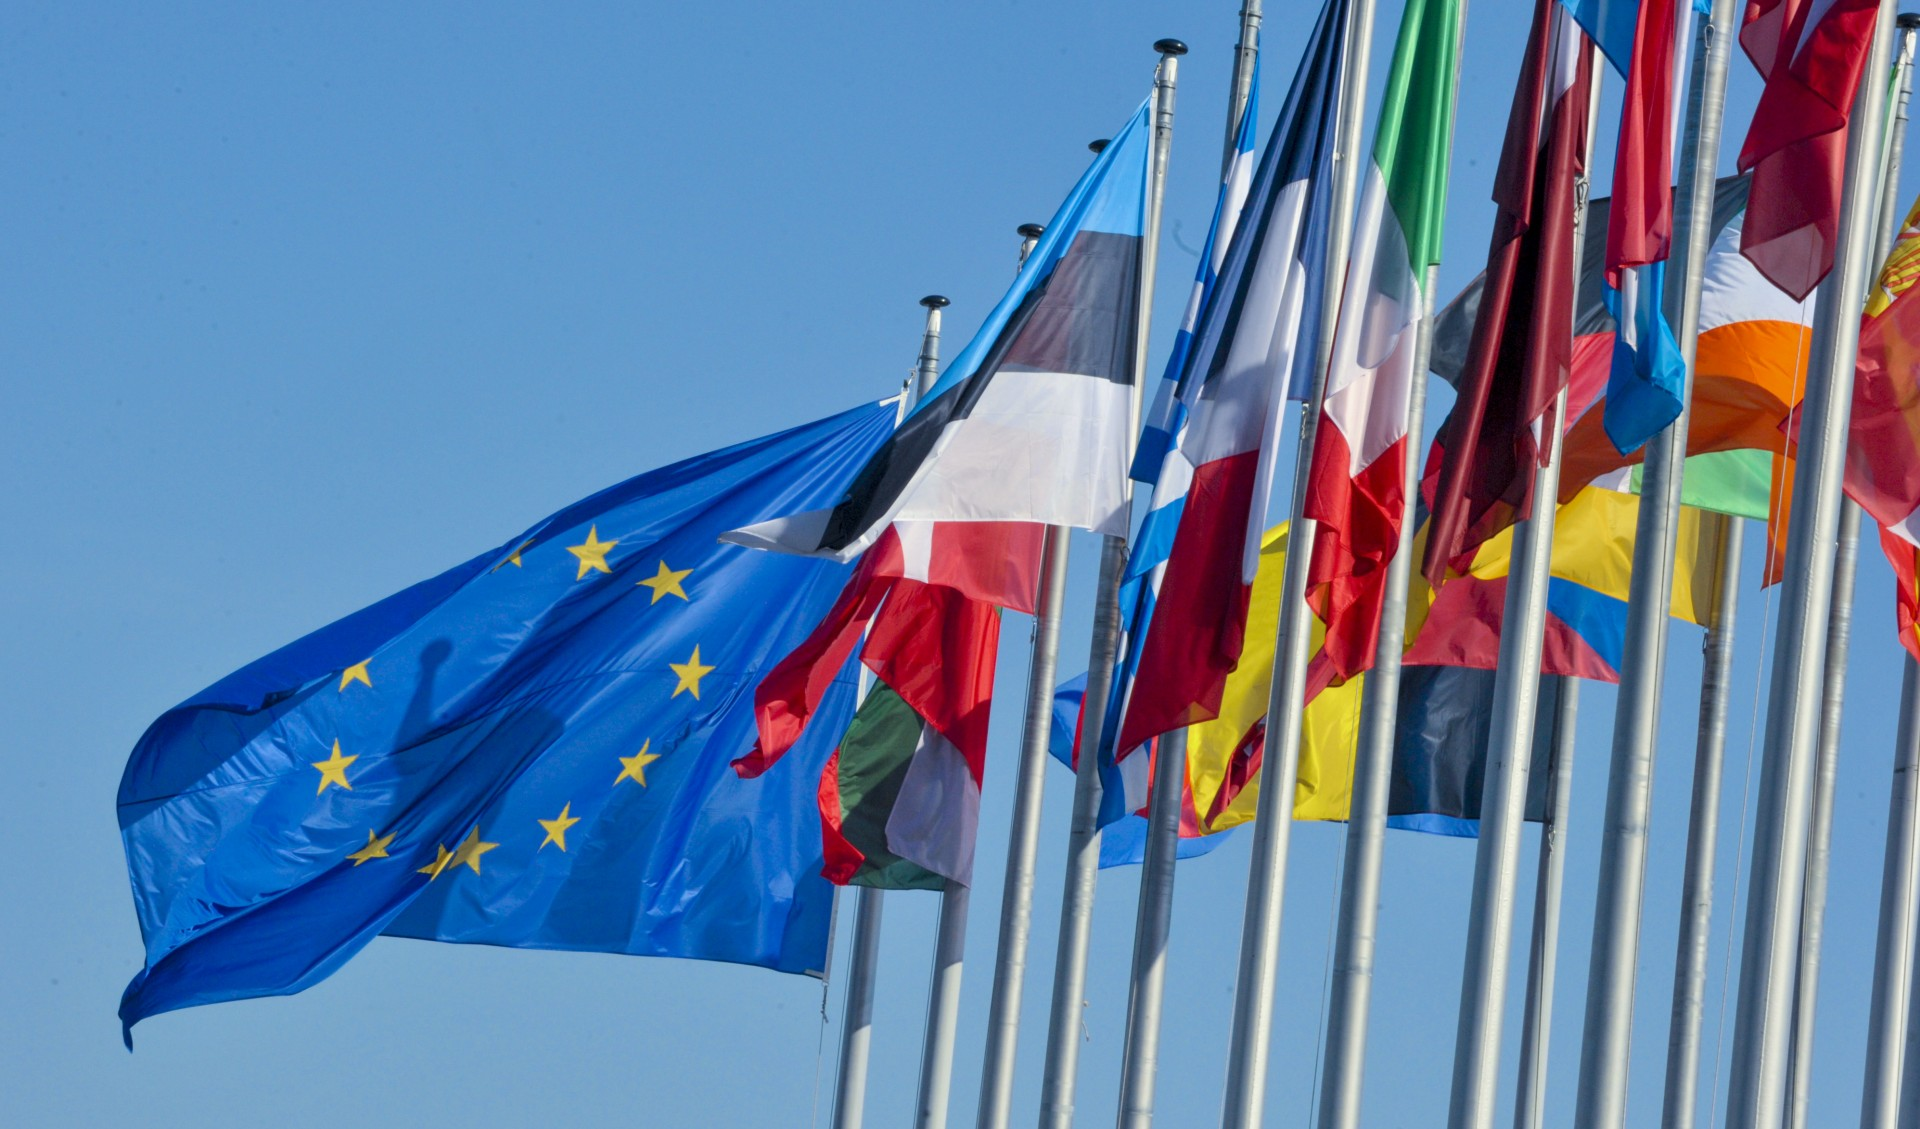 foto: Flickr/European Parlement (CC BY-NC-ND 2.0)